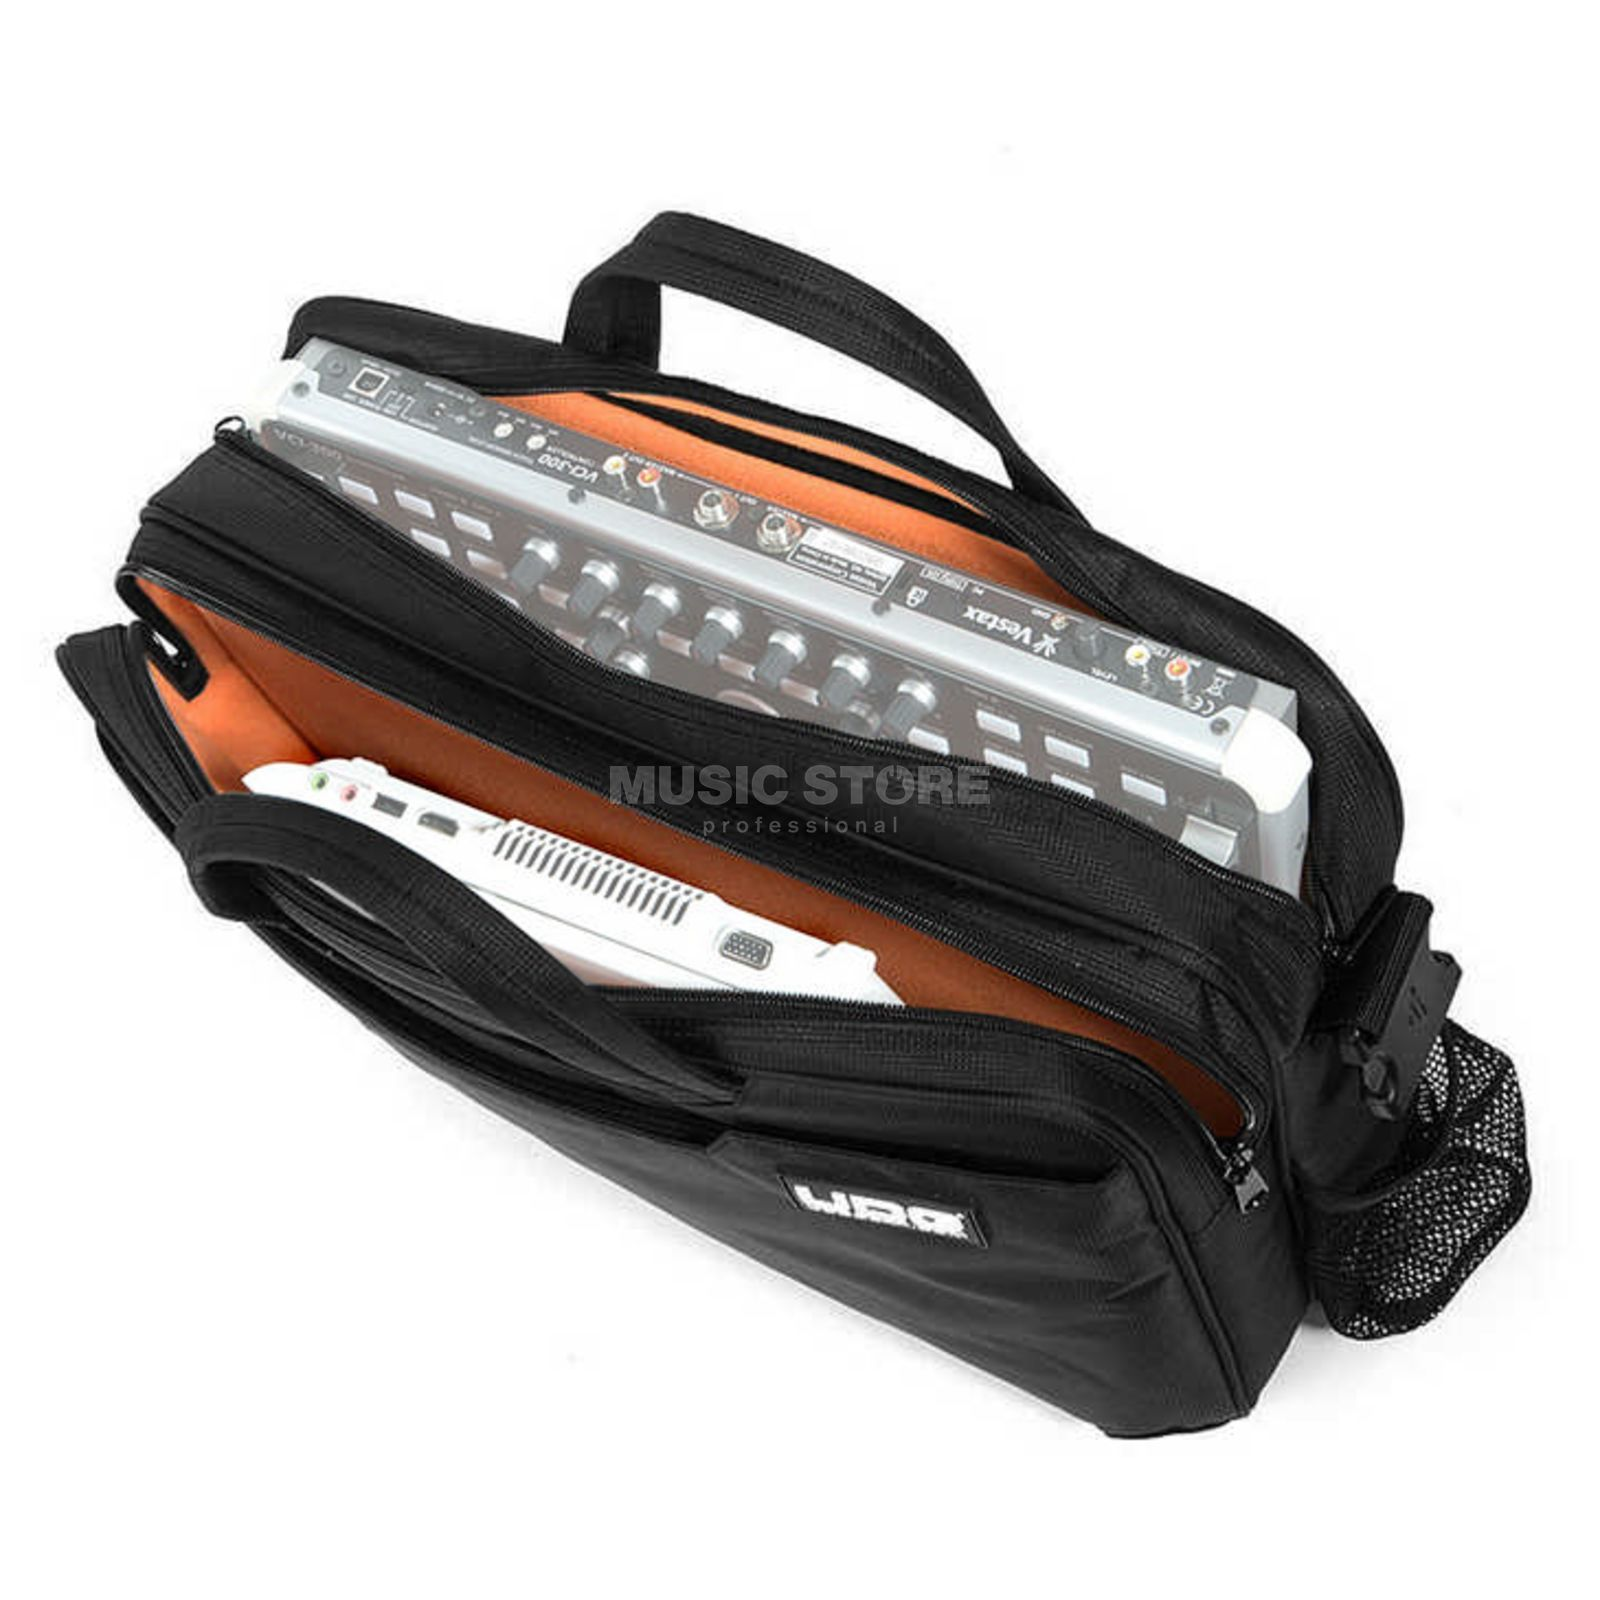 UDG MIDI Controller Bag Black/Orange Inside U9011 Изображение товара